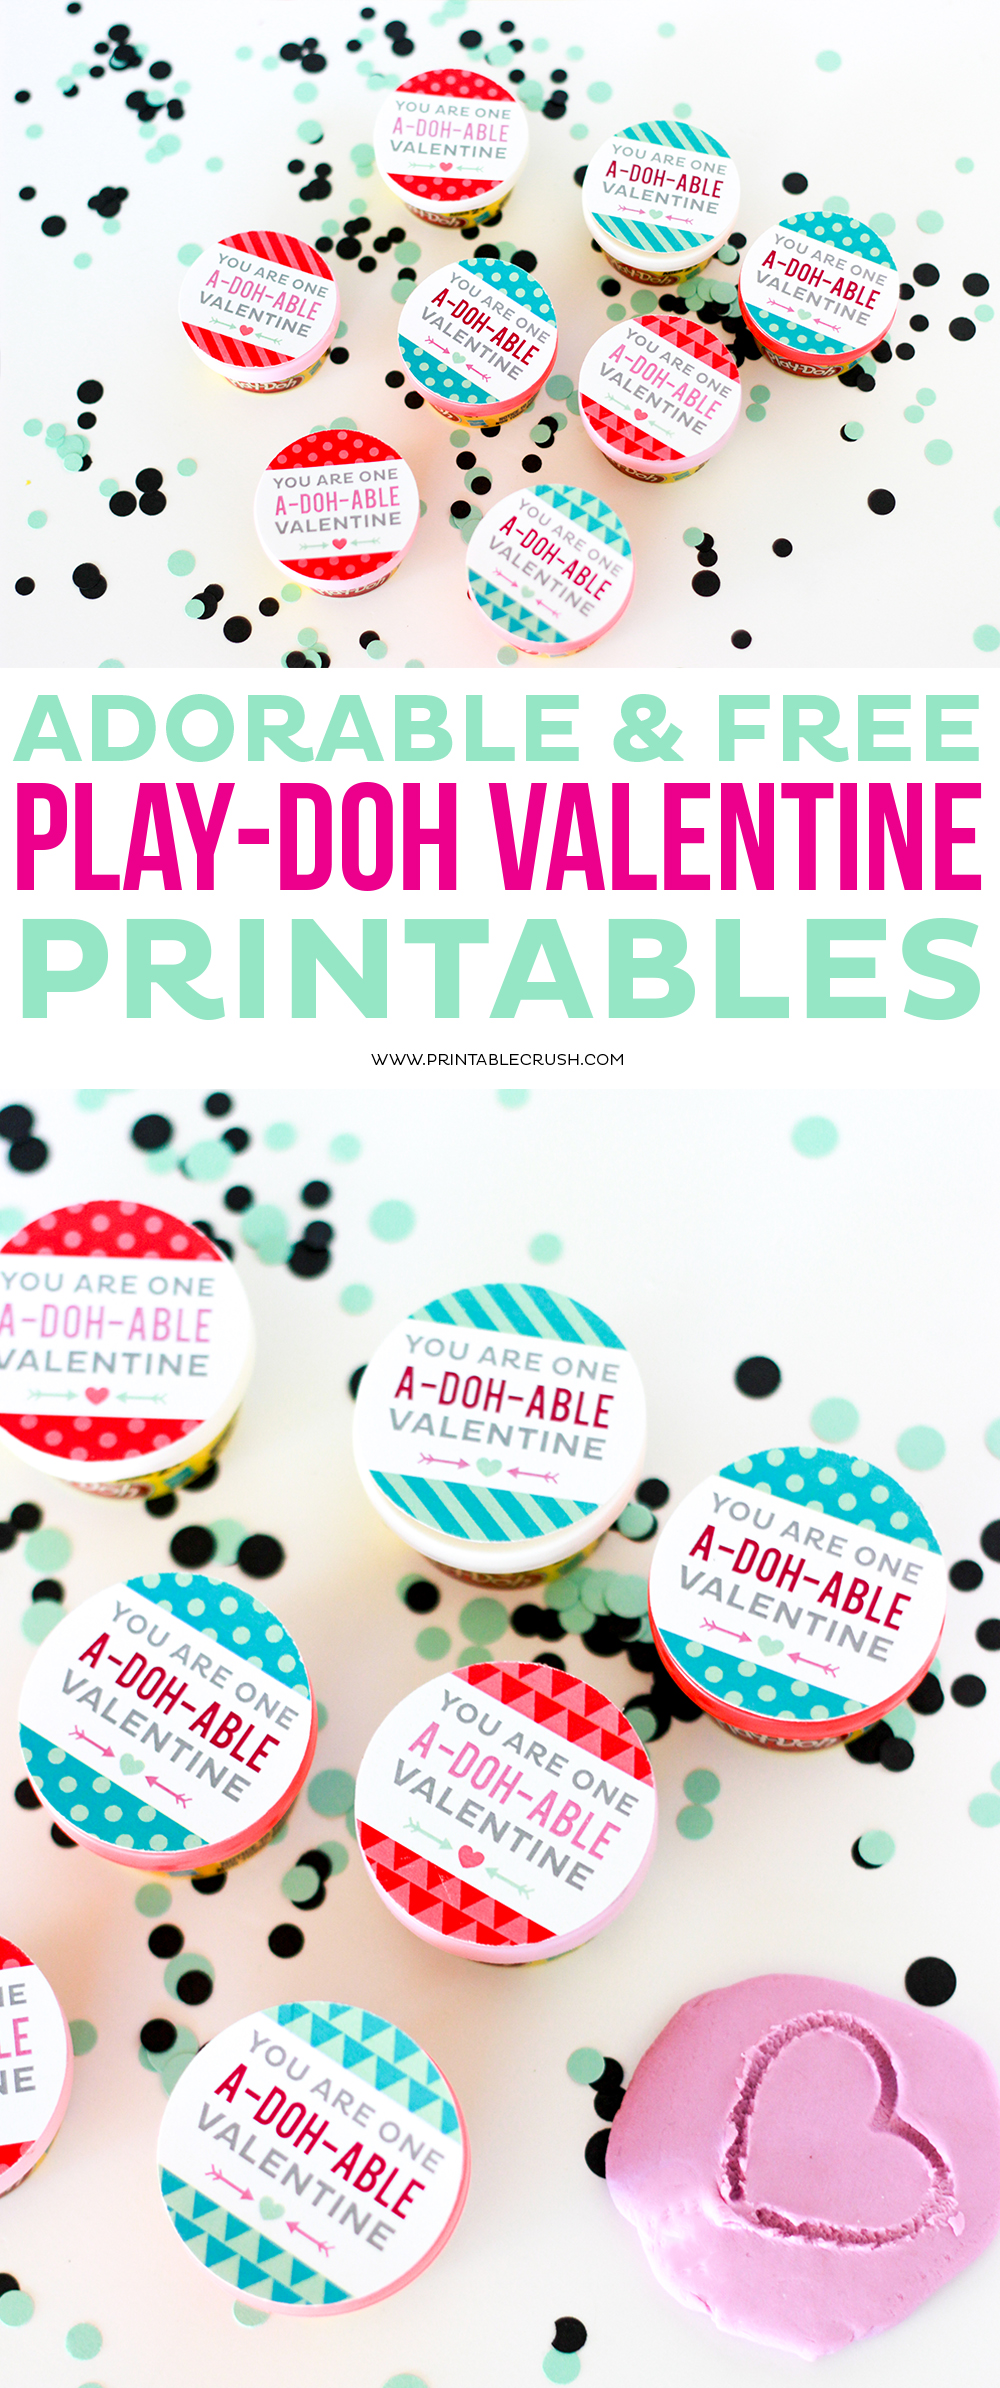 picture relating to Play Doh Valentine Printable called Lovely and No cost Enjoy-doh Valentine Printables - Printable